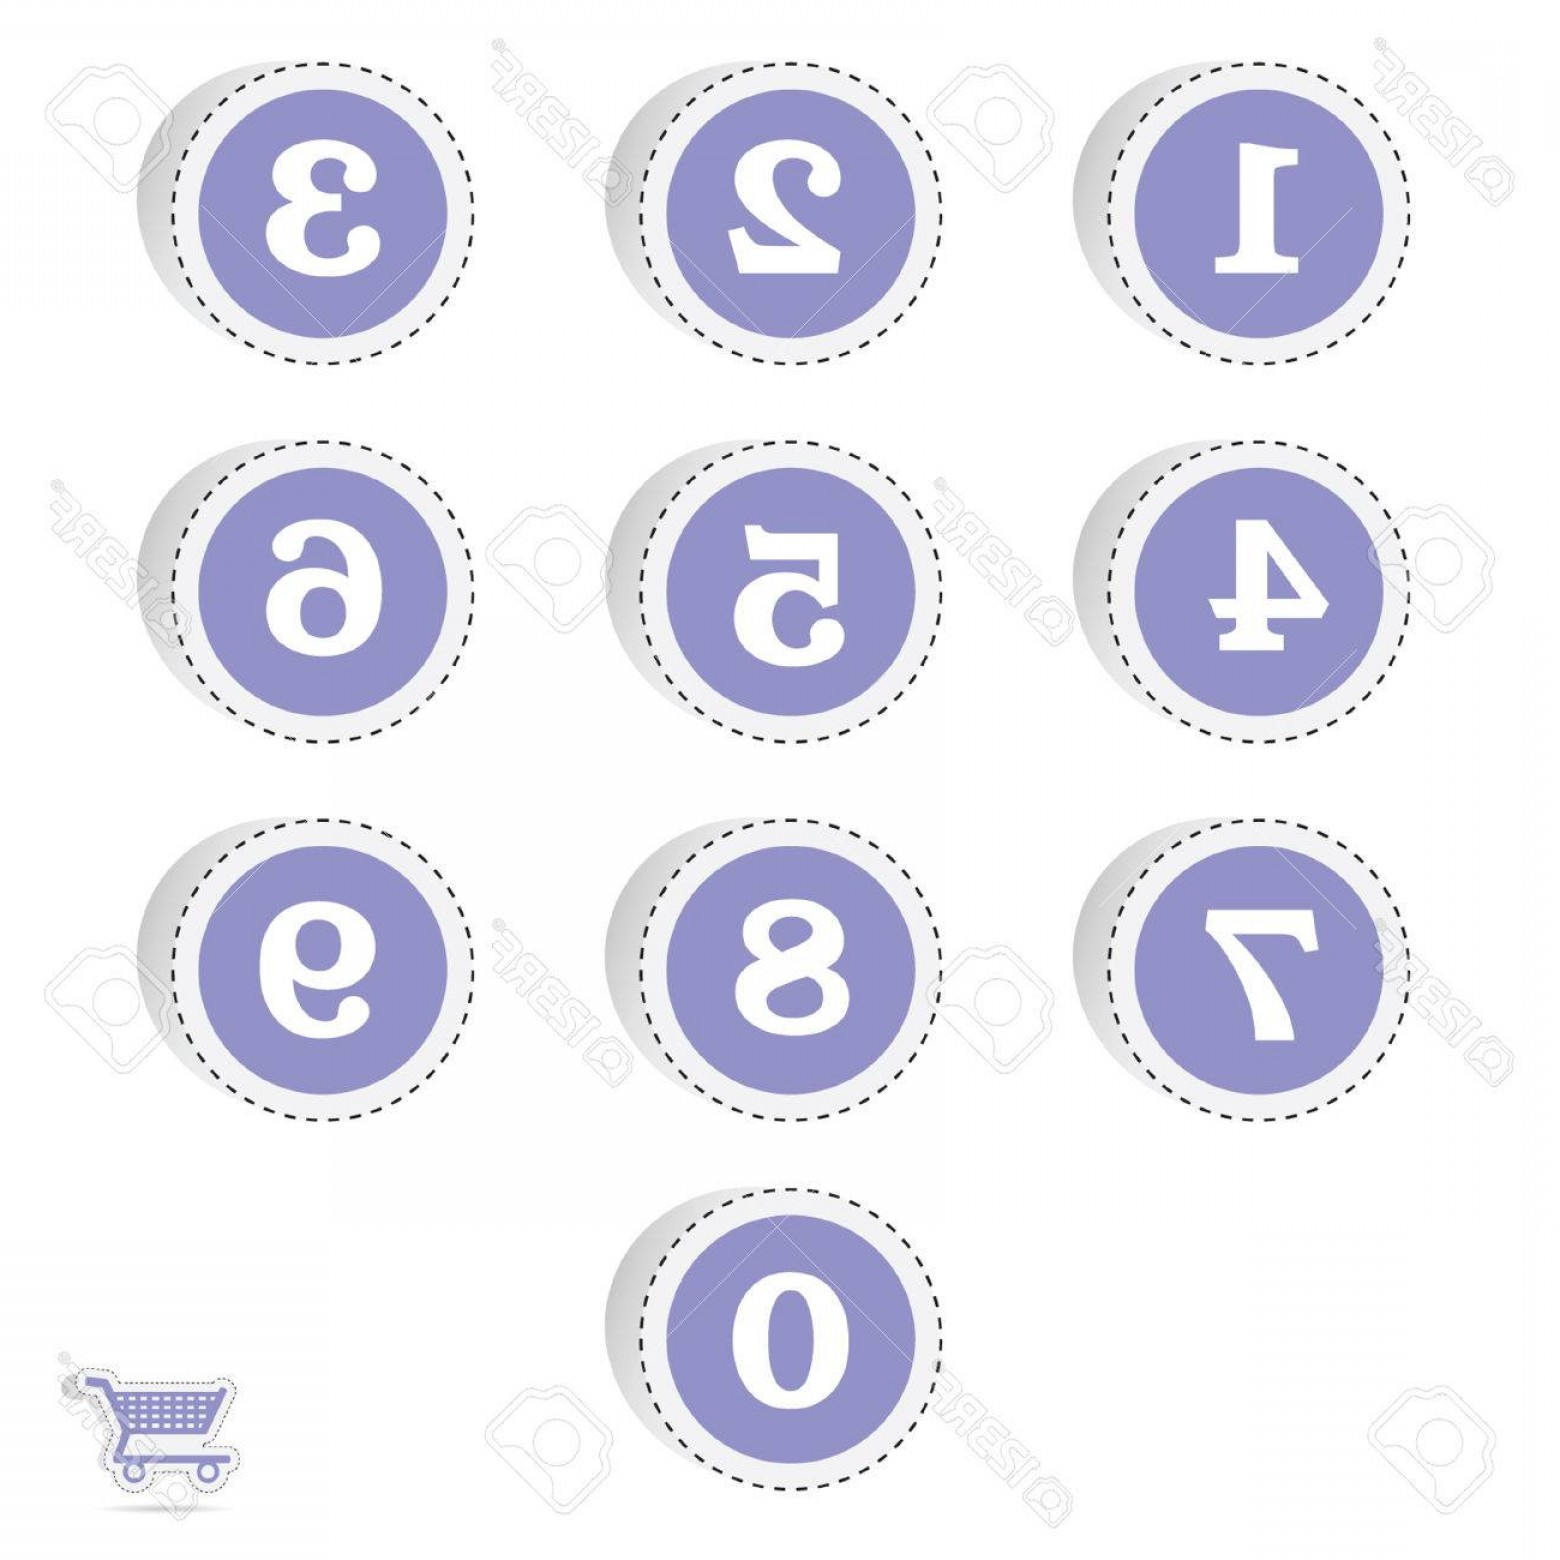 Numbered Tab Vectors In Blue: Photostock Vector Blue Circle Sticker With Numbers Illustration On White